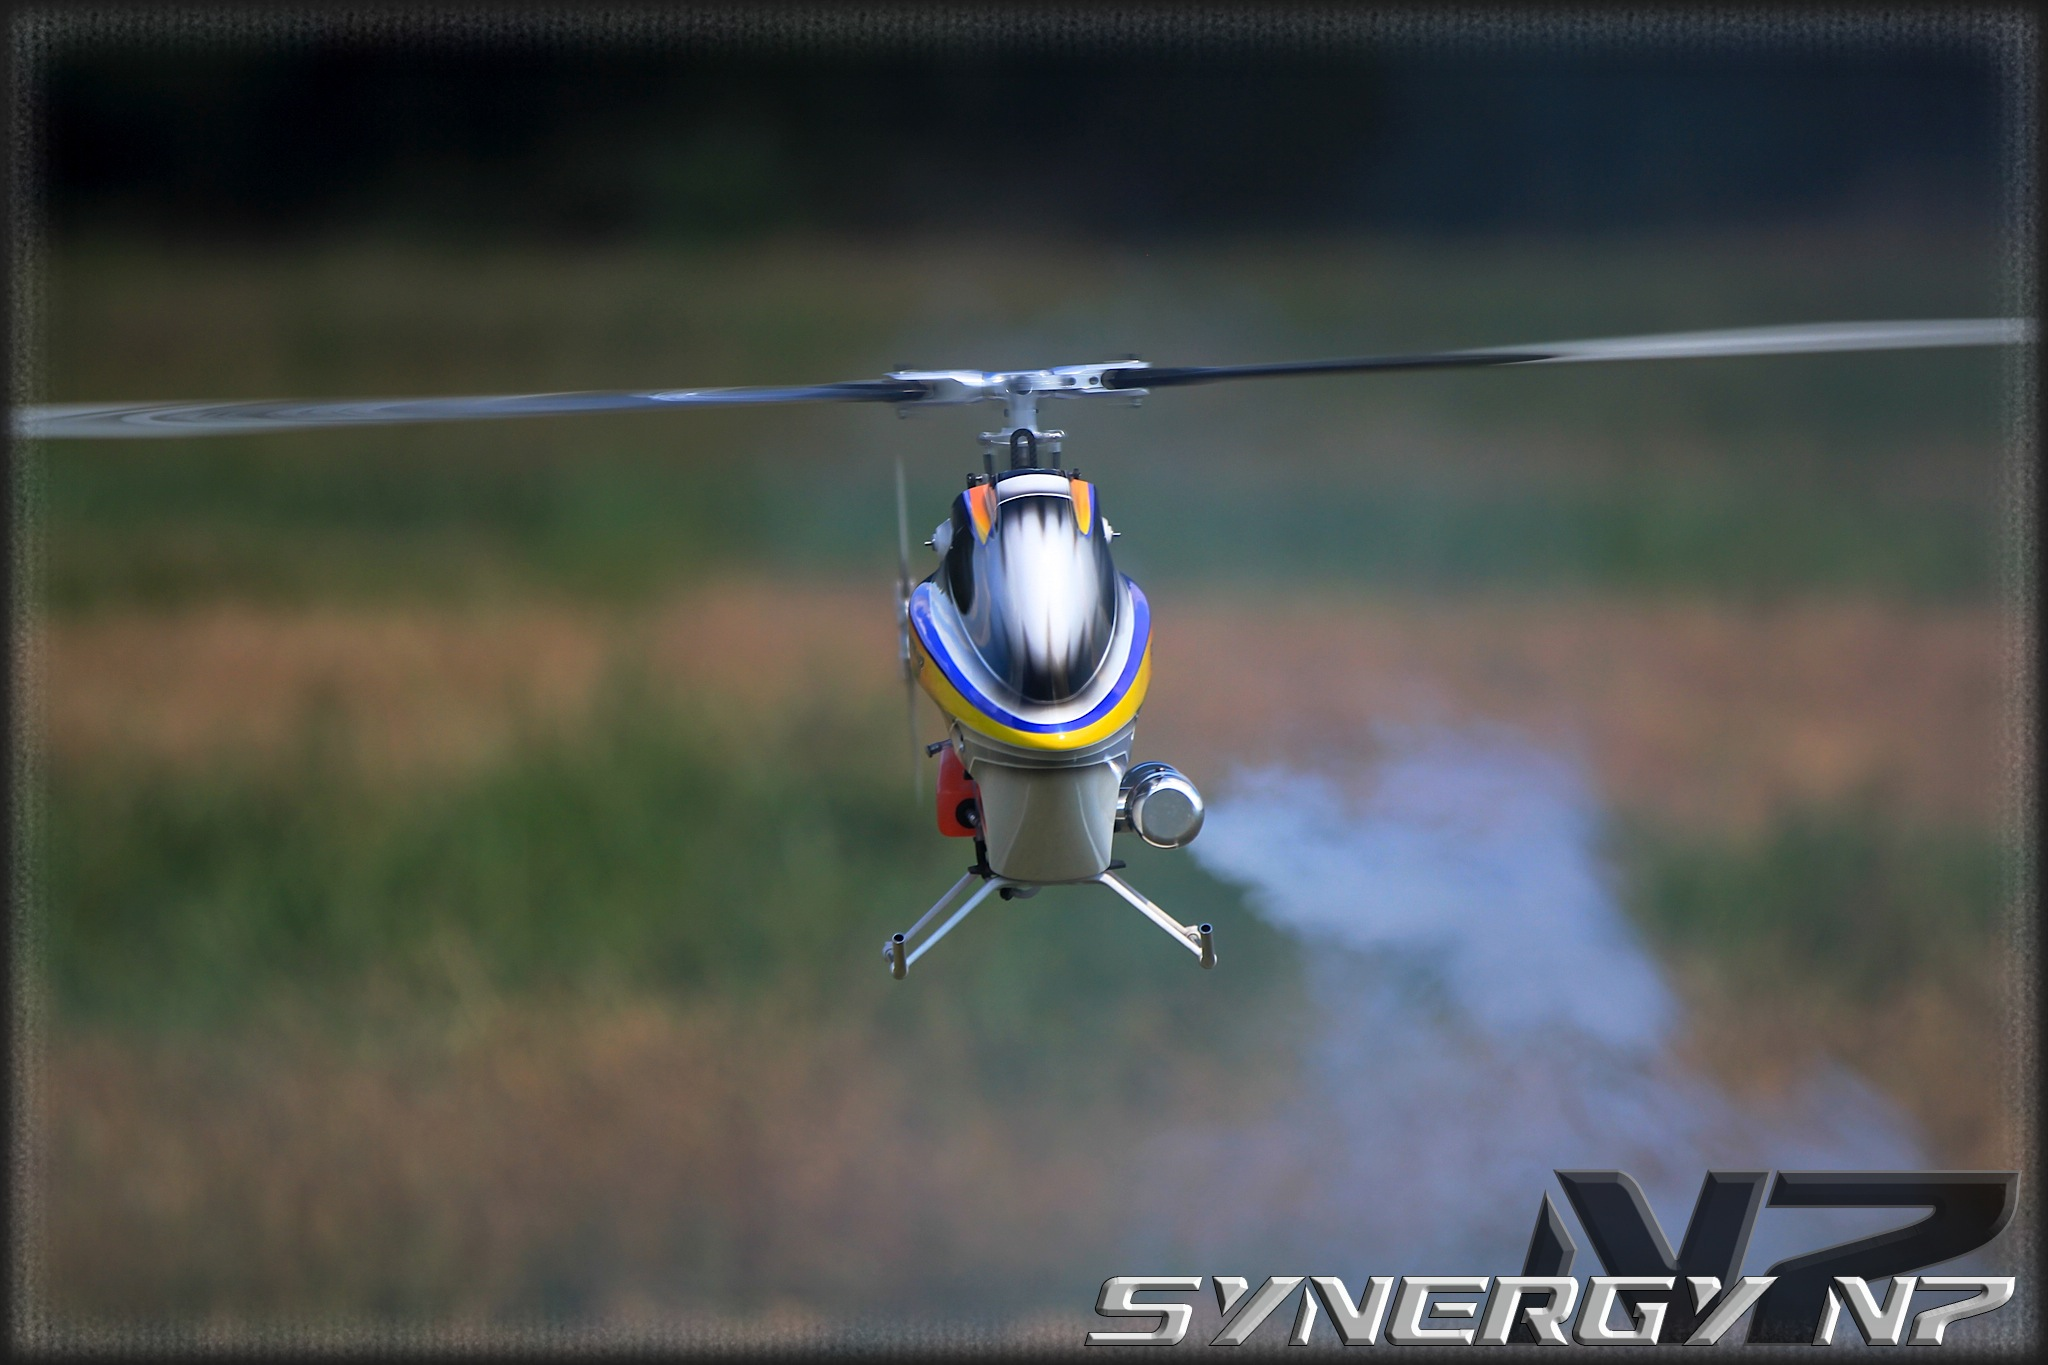 Drive A Tank >> Synergy N7 : Synergy R/C Helicopters – The Official Website